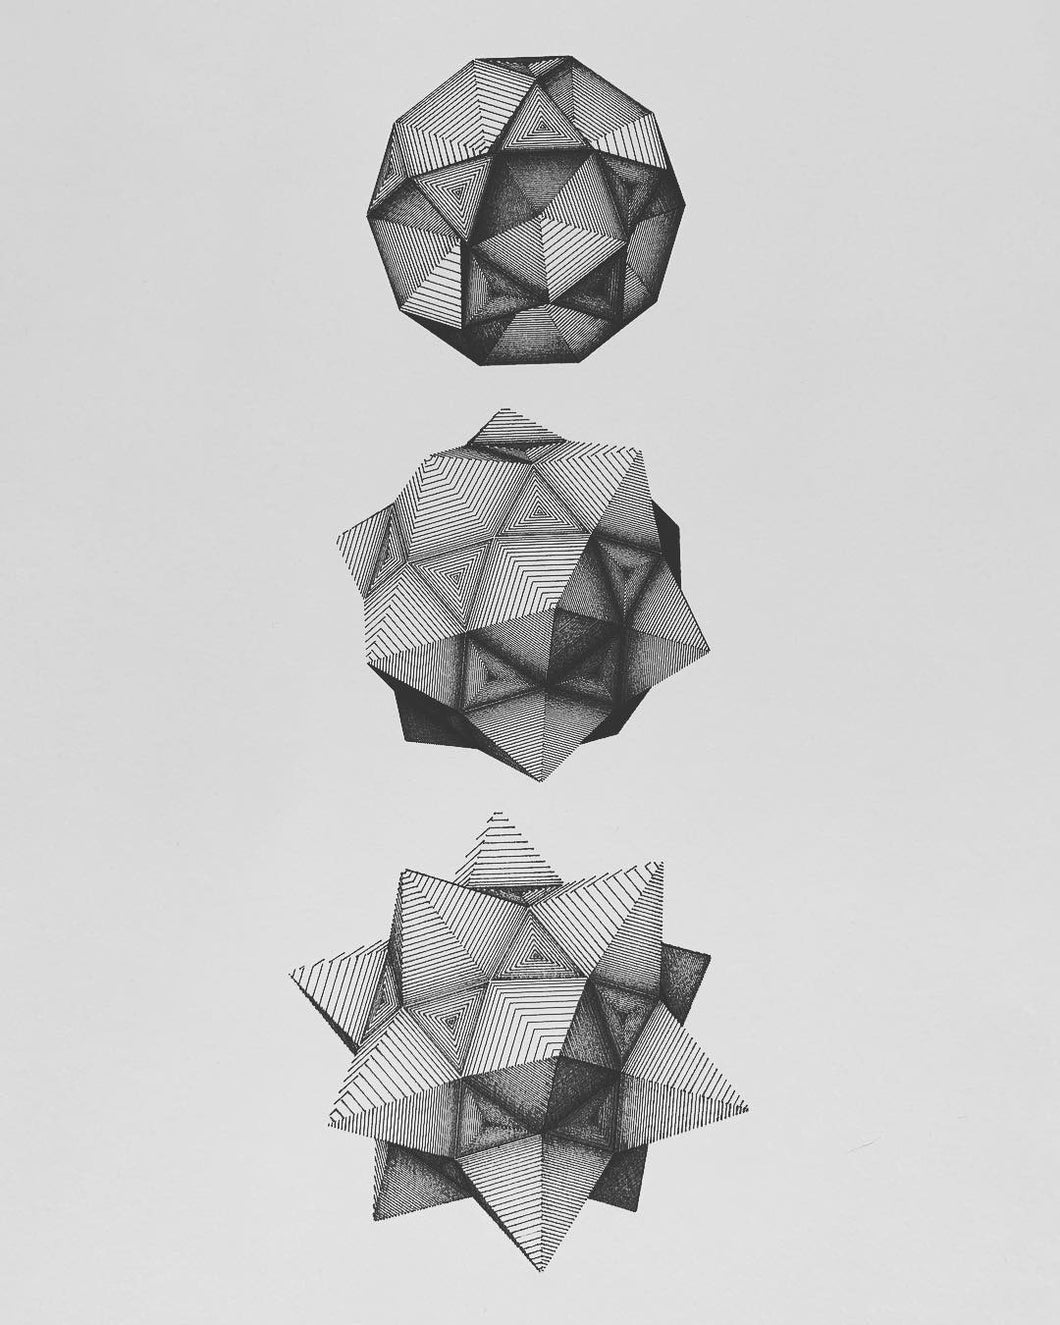 Three Polyhedra